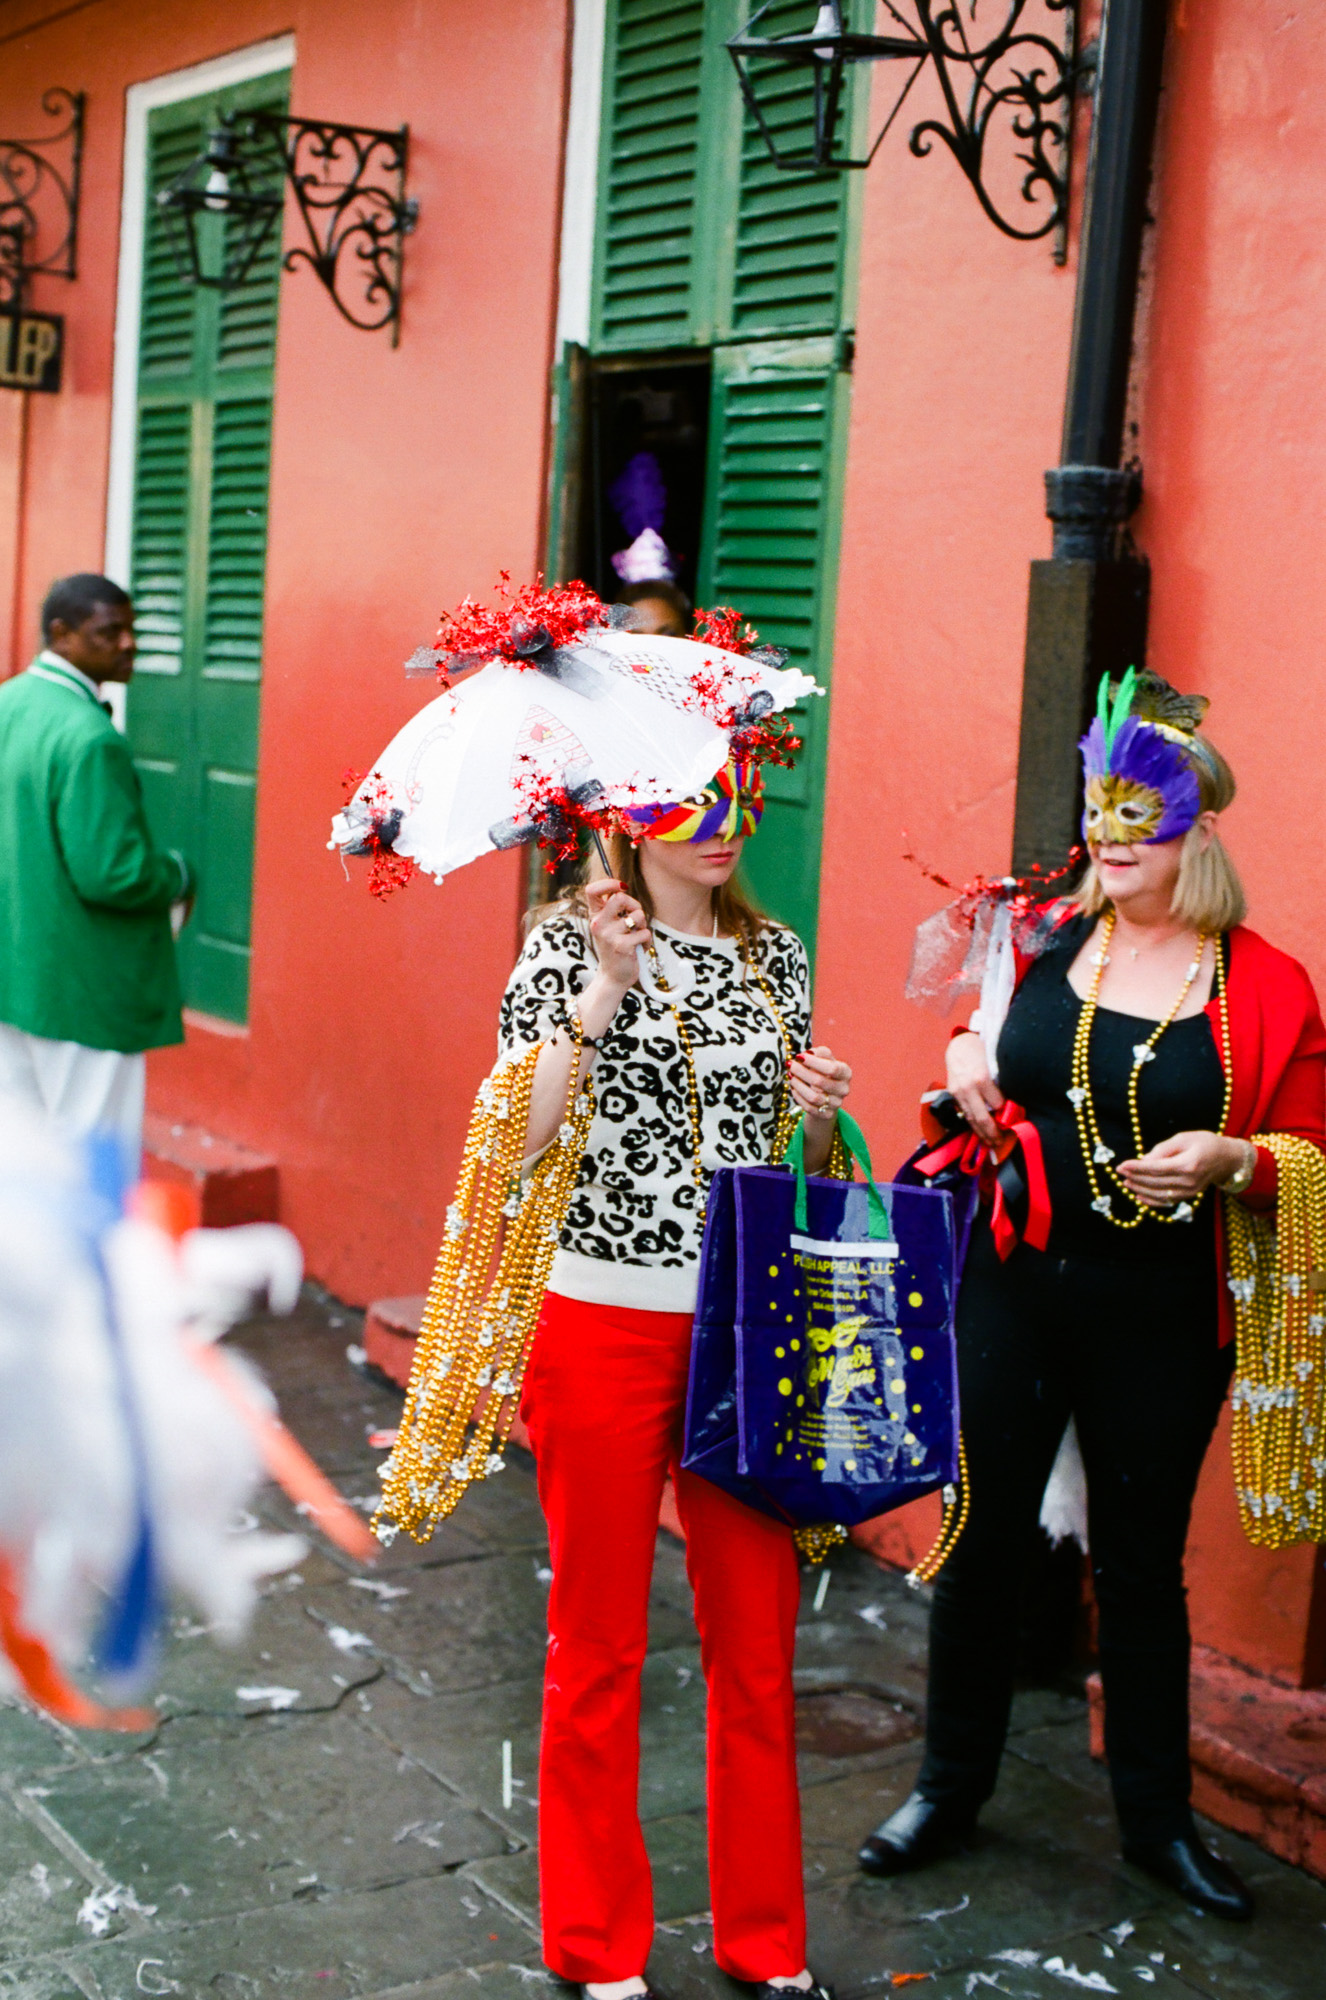 NEWORLEANS2013_©kristinmyoung_SquareLORes-2.jpg